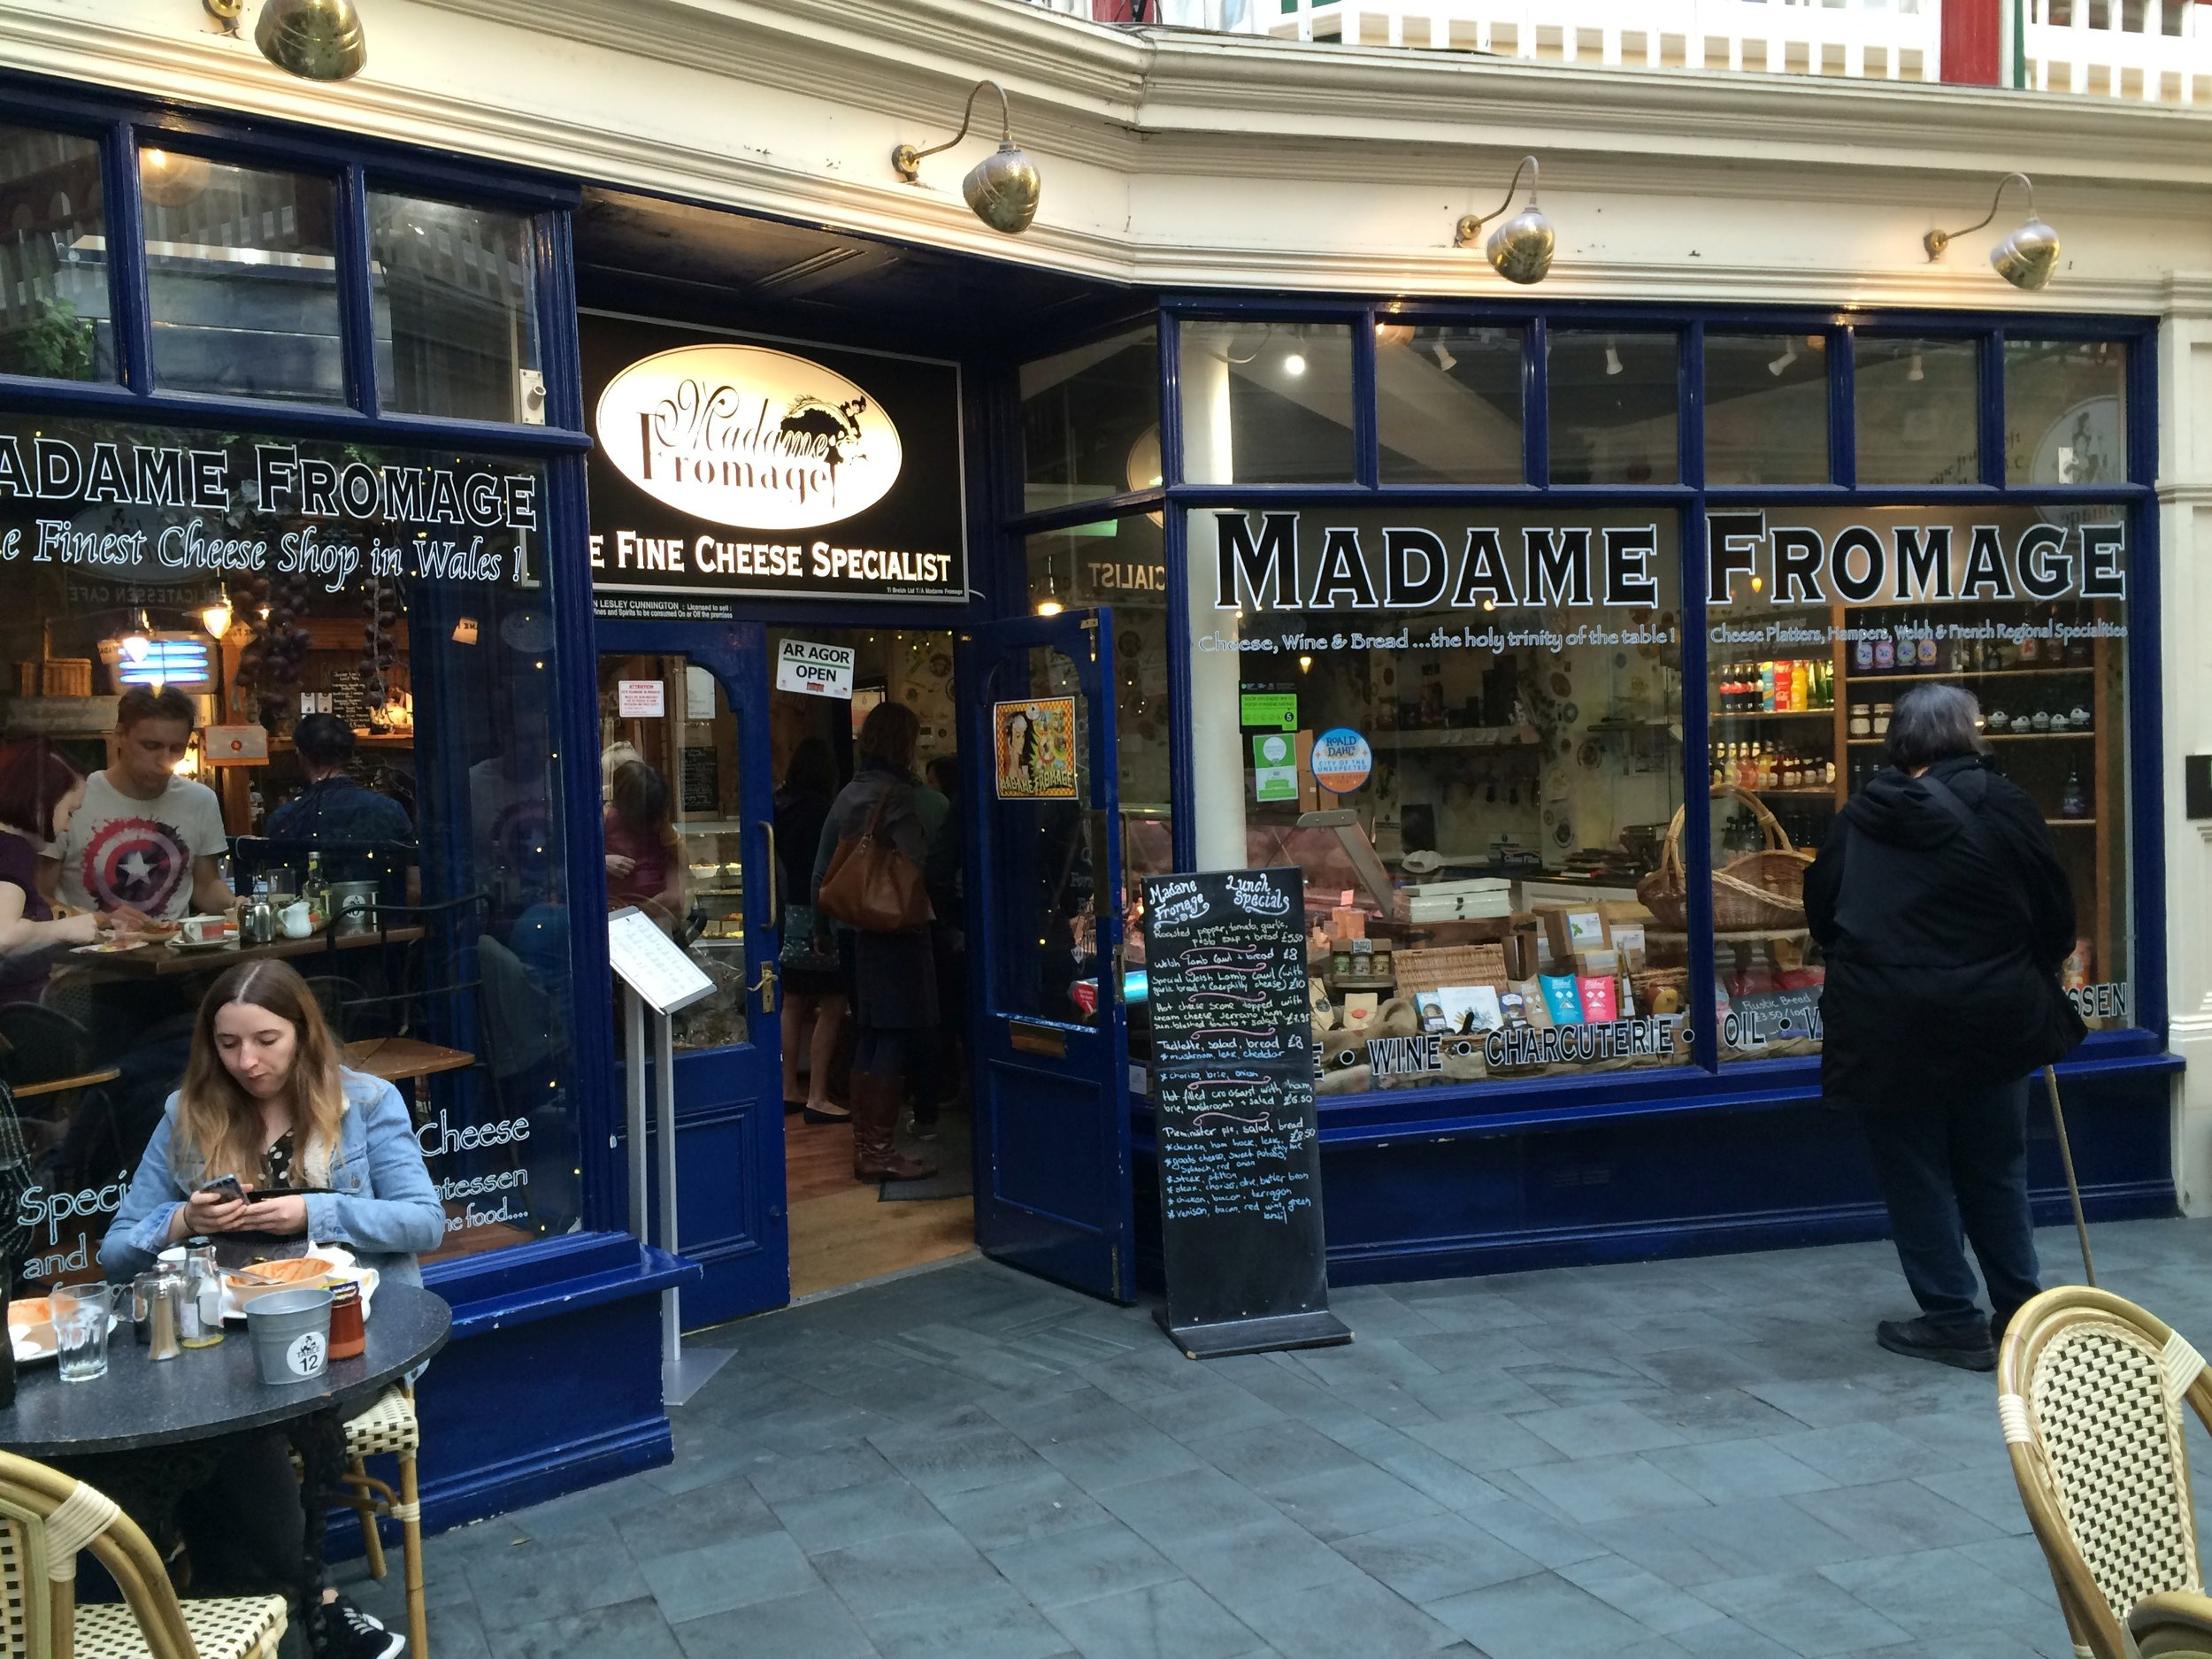 Cheese shop and cafe in the Queen's Arcade, Cardiff - more photos follow the post